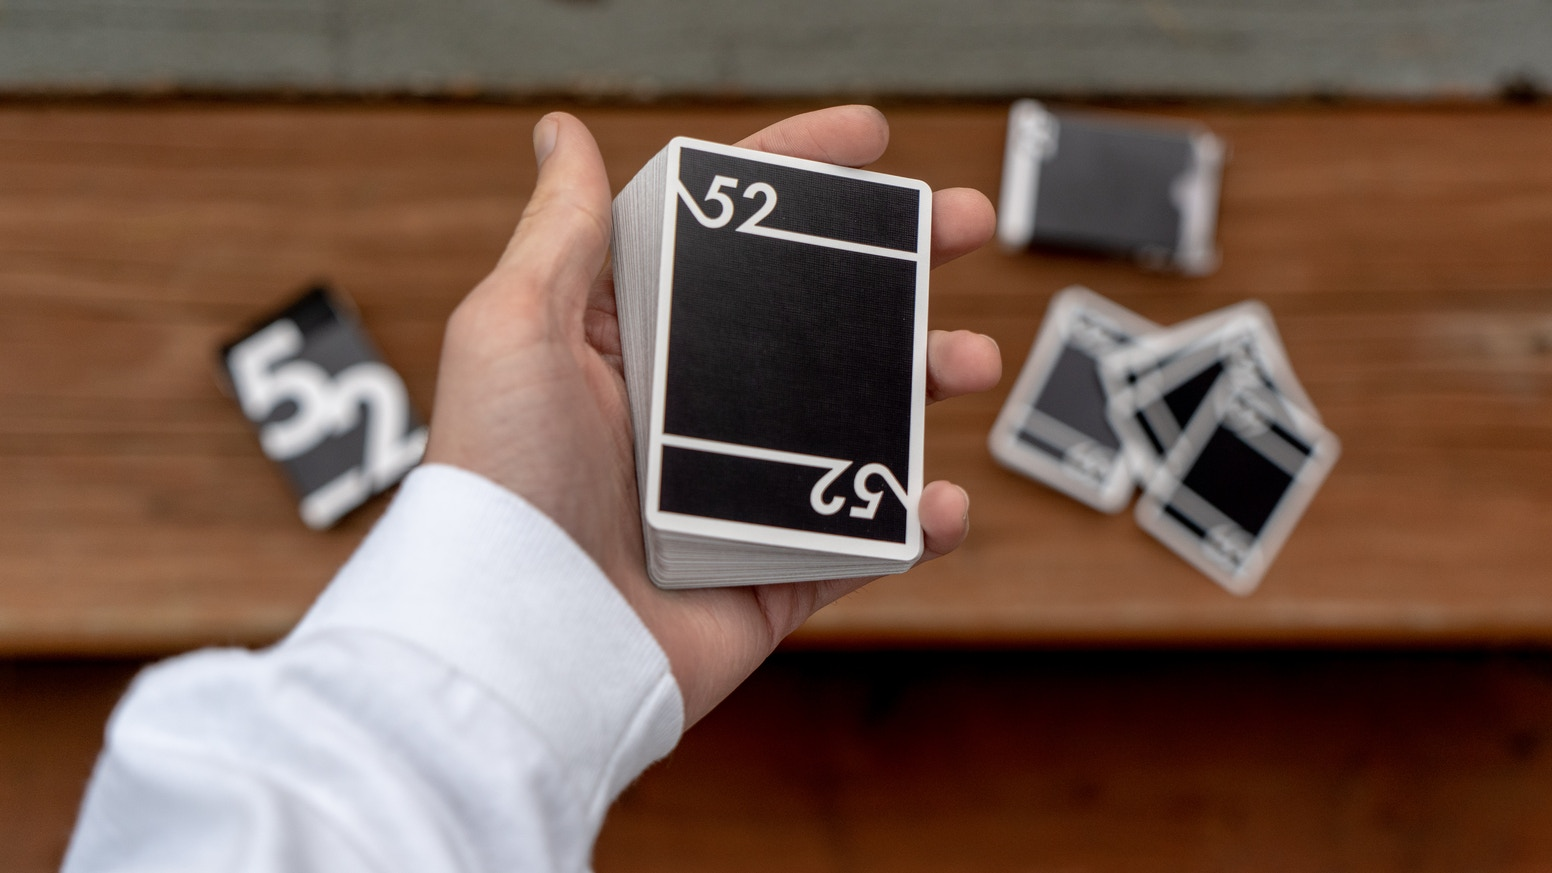 Fifty Two Playing Cards, A Deck of Playing Cards That Admire Simplicity.